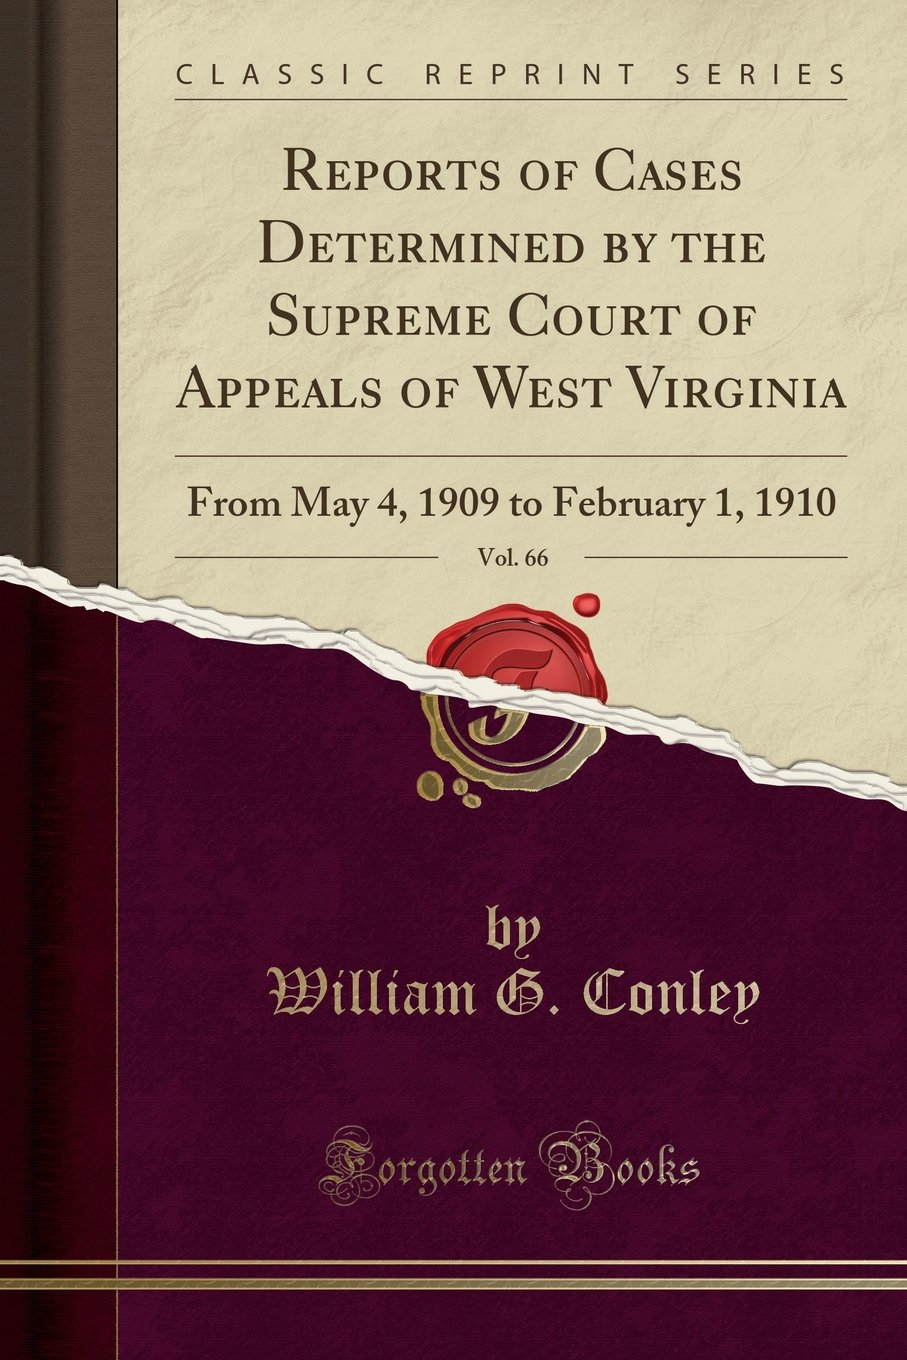 Reports of Cases Determined by the Supreme Court of Appeals of West Virginia, Vol. 66: From May 4, 1909 to February 1, 1910 (Classic Reprint) pdf